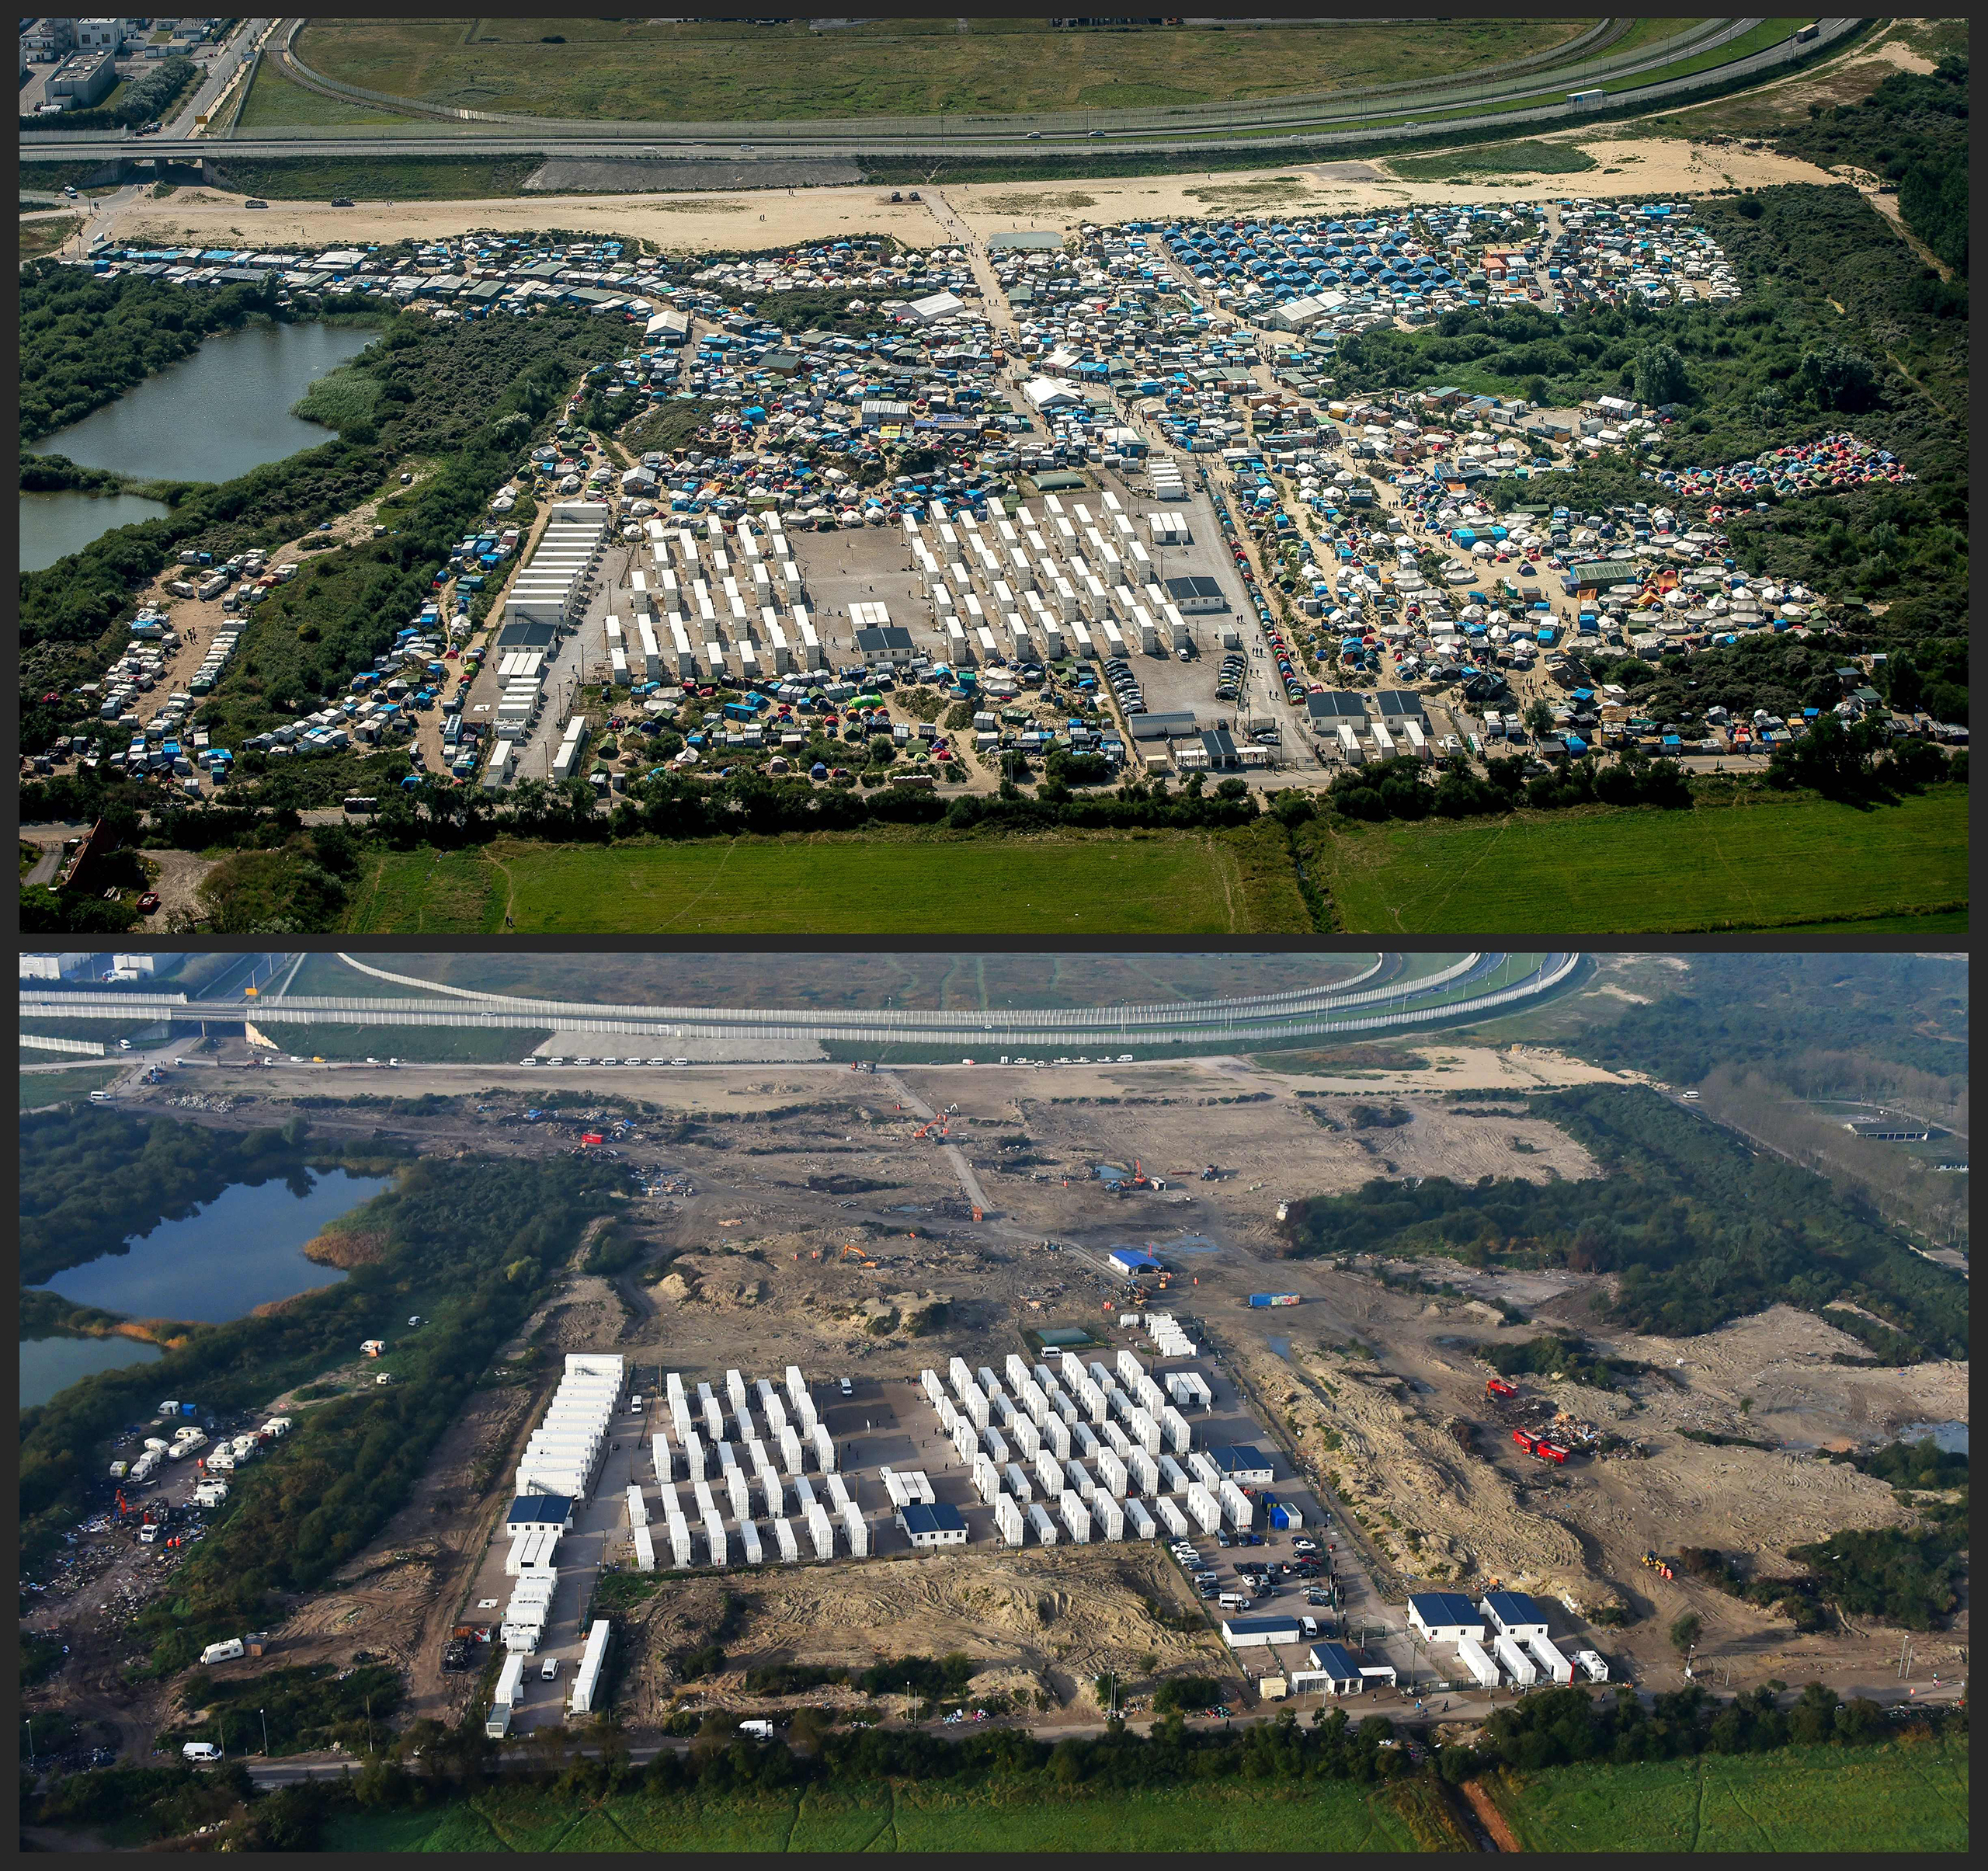 A combination shows two aerial views of the  Jungle  camp in Calais, northern France, on Aug. 16, 2016 and Nov. 1, 2016. The bottom picture shows the aftermath of forced evictions of thousands of migrants and demolition of the shacks in which they slept.